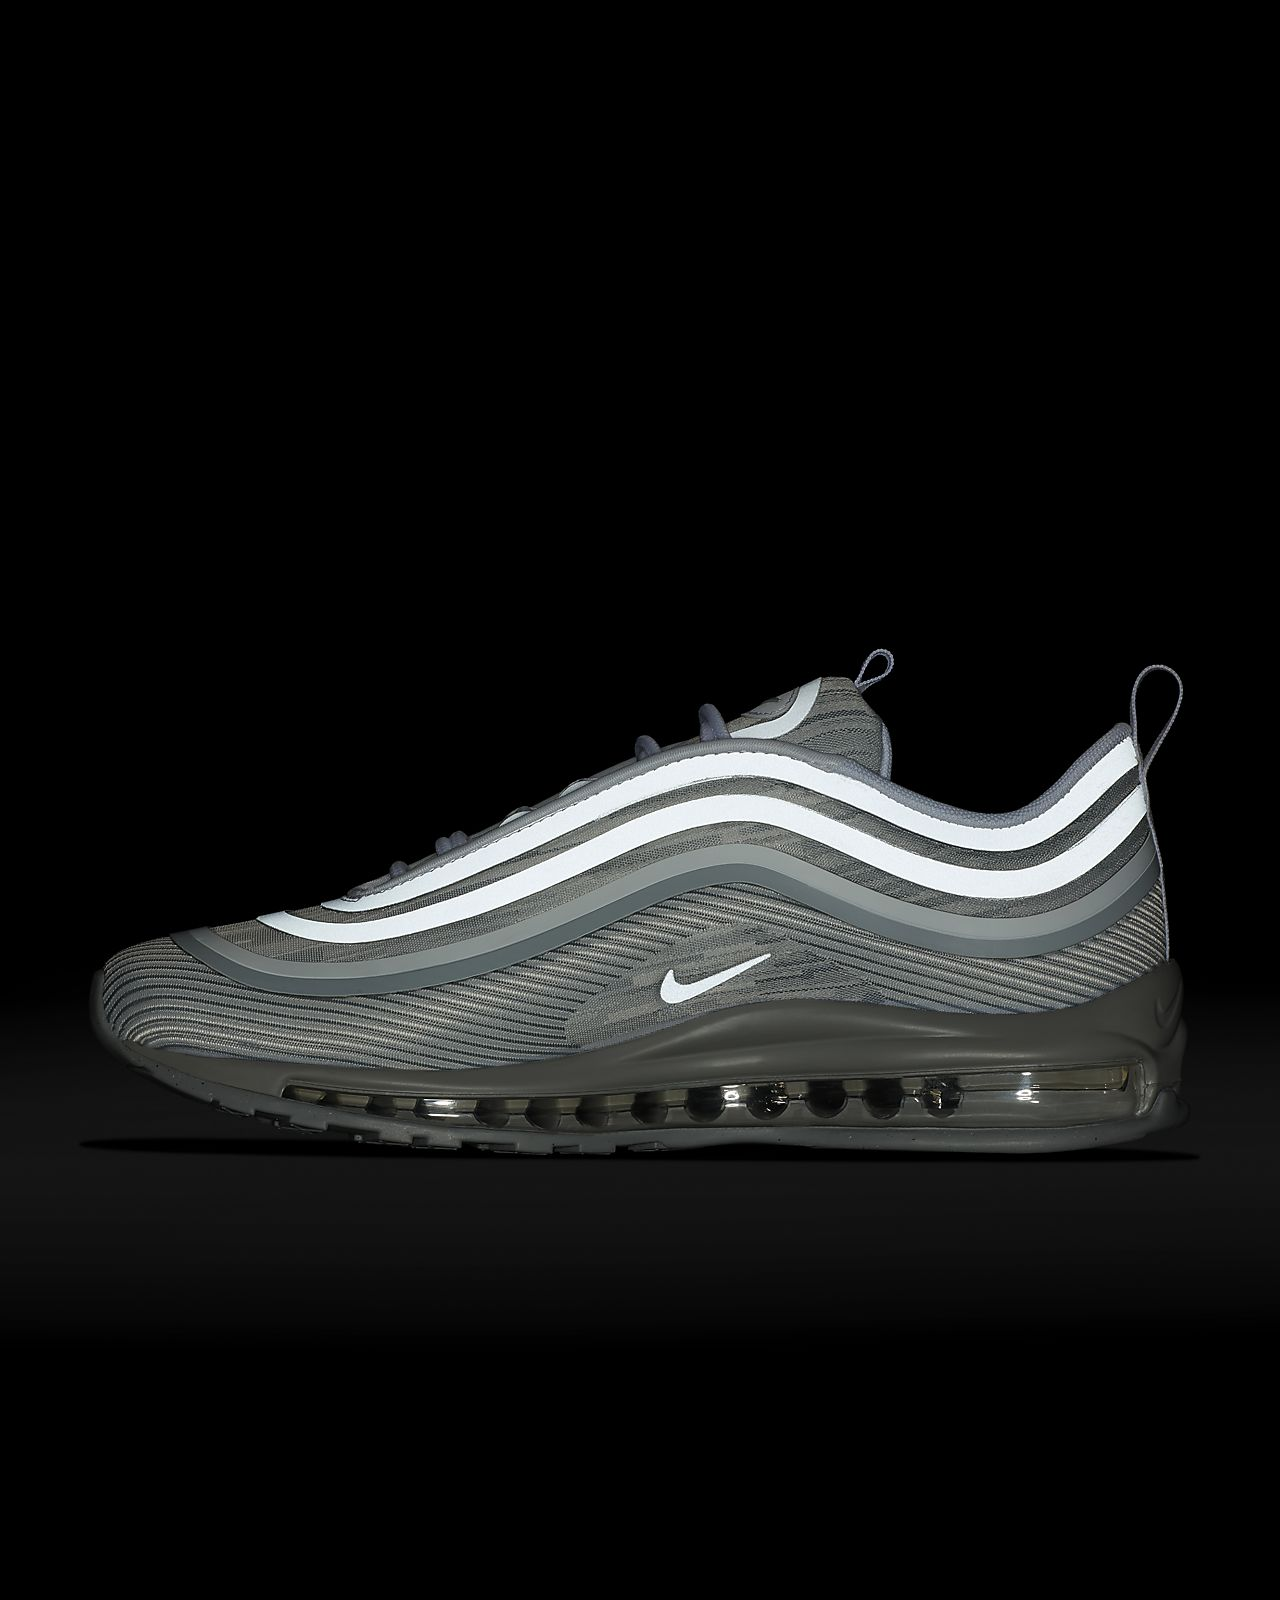 huge discount a11ec 6ddf7 ... Nike Air Max 97 Ultra 17 Herrenschuh